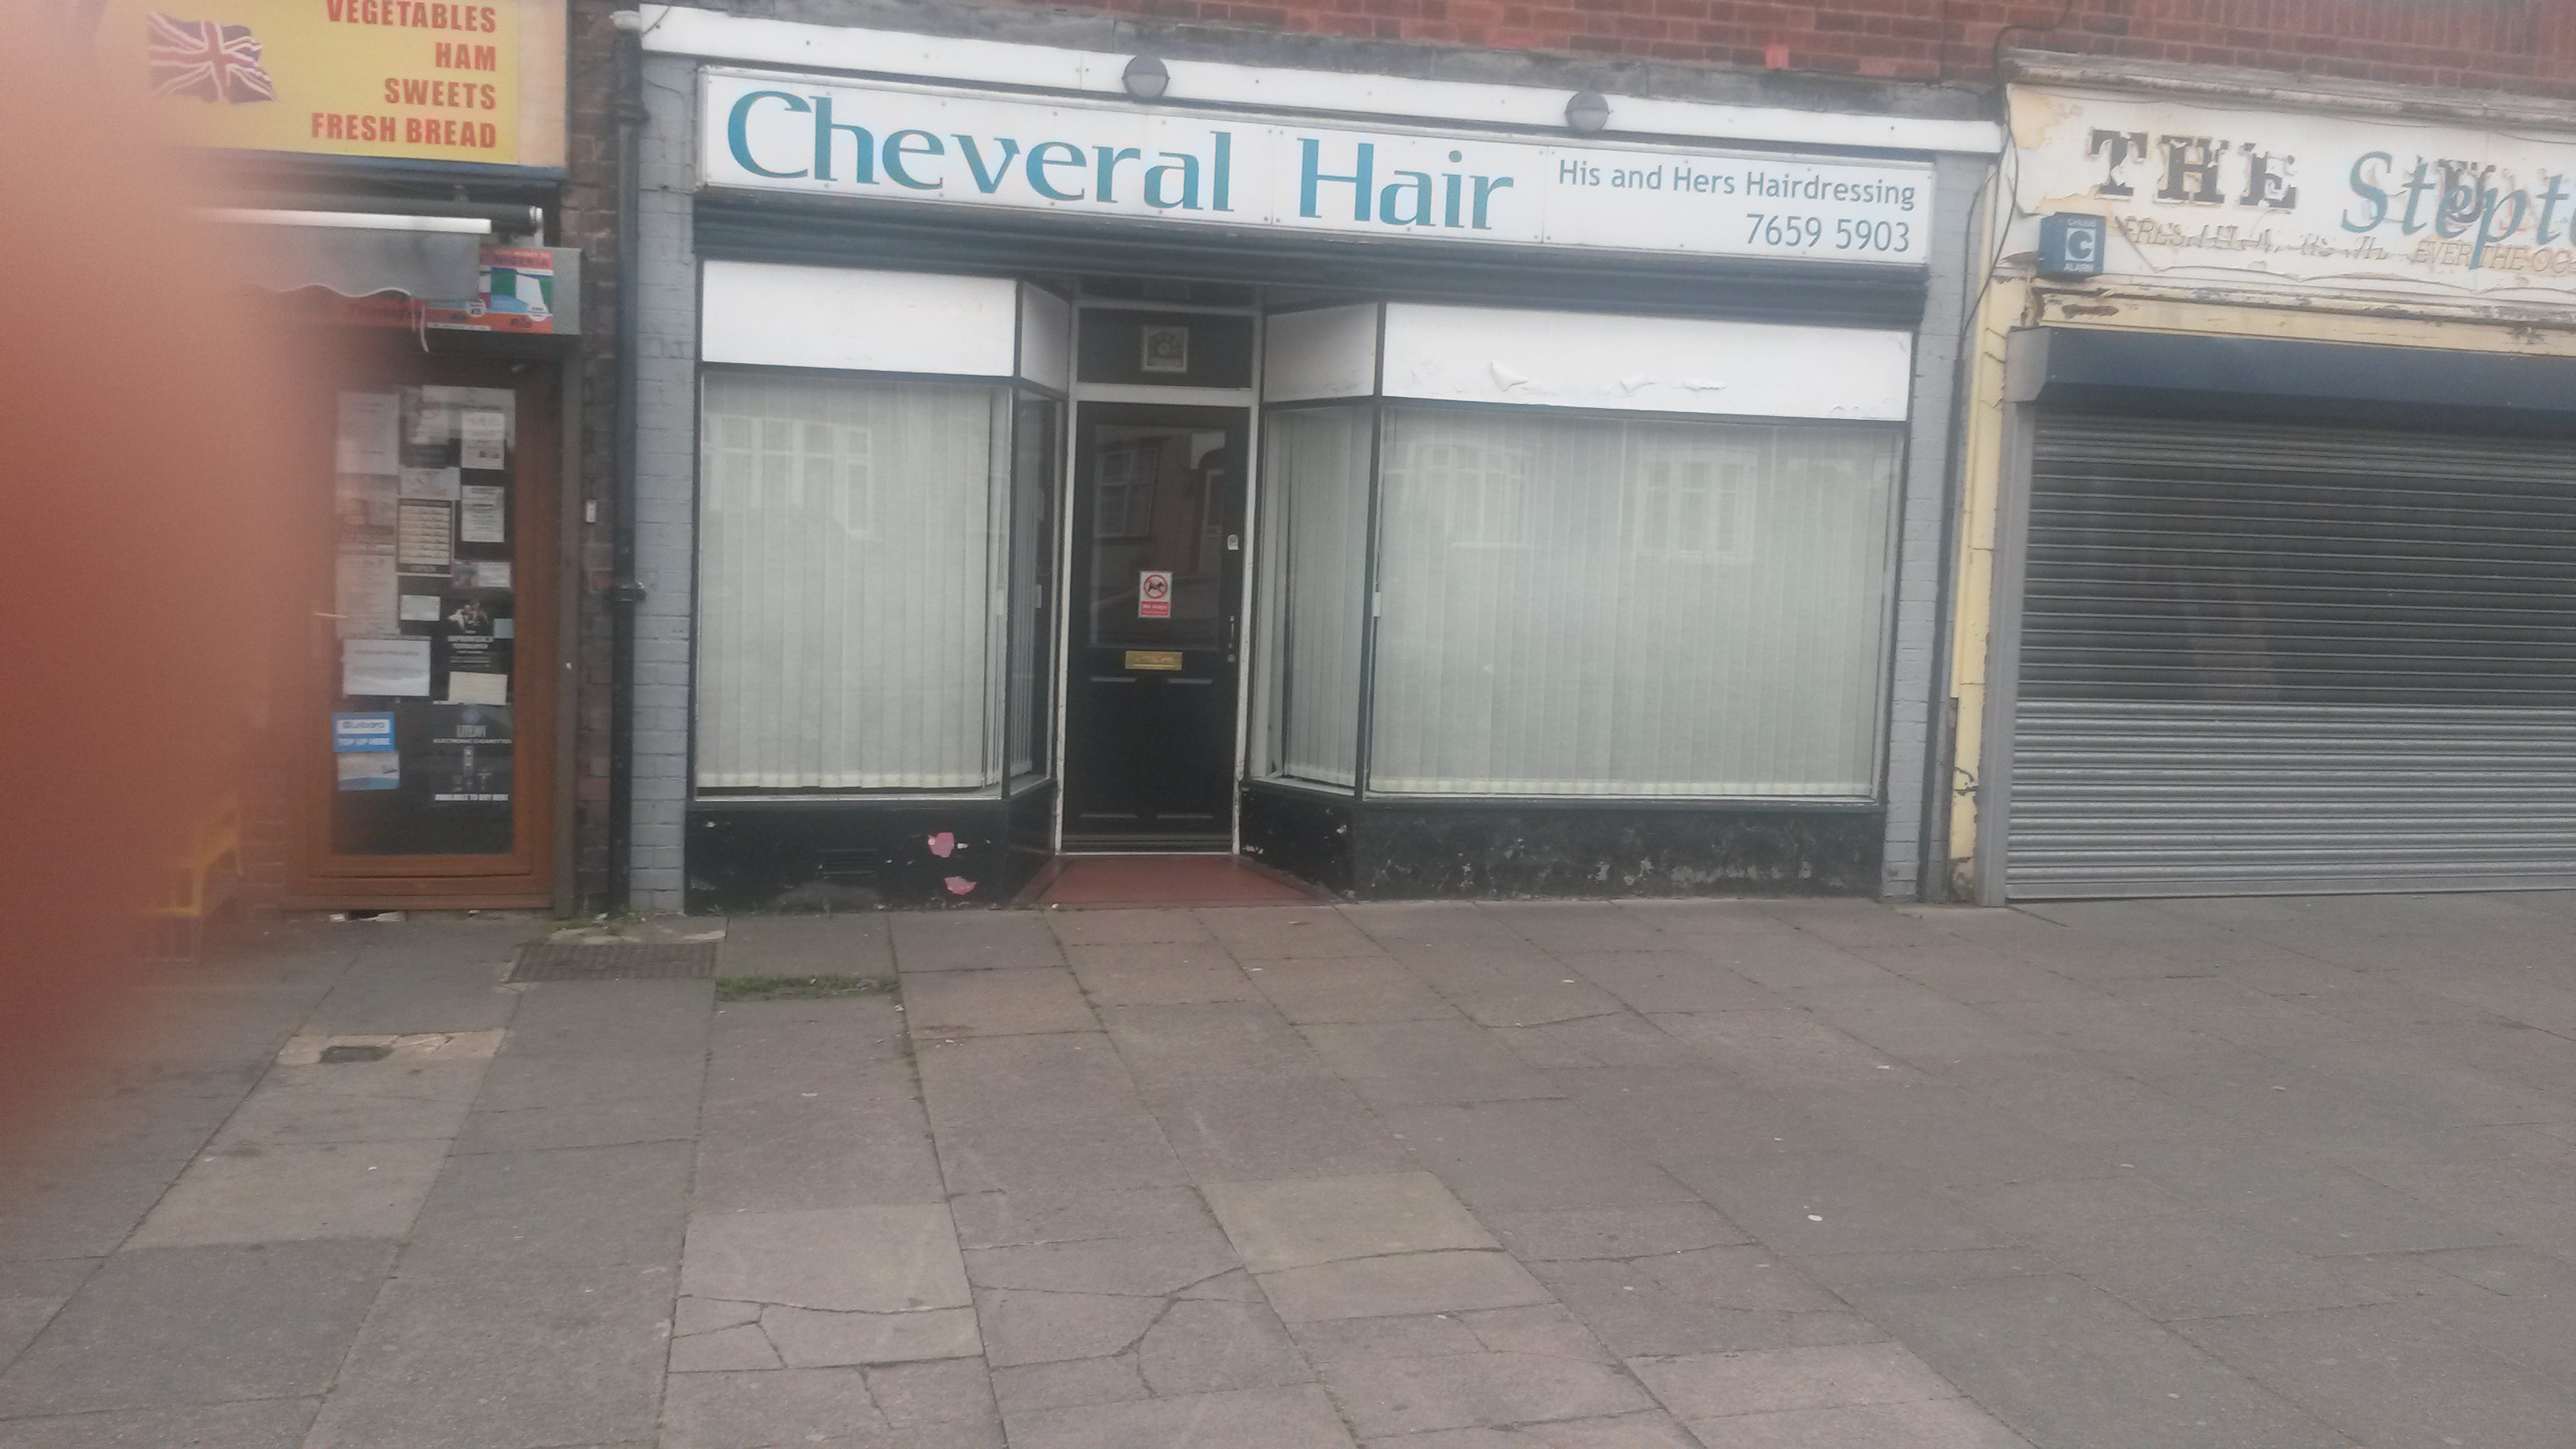 cheveral hair - Coventry, West Midlands CV6 3EN - 02476 595903 | ShowMeLocal.com